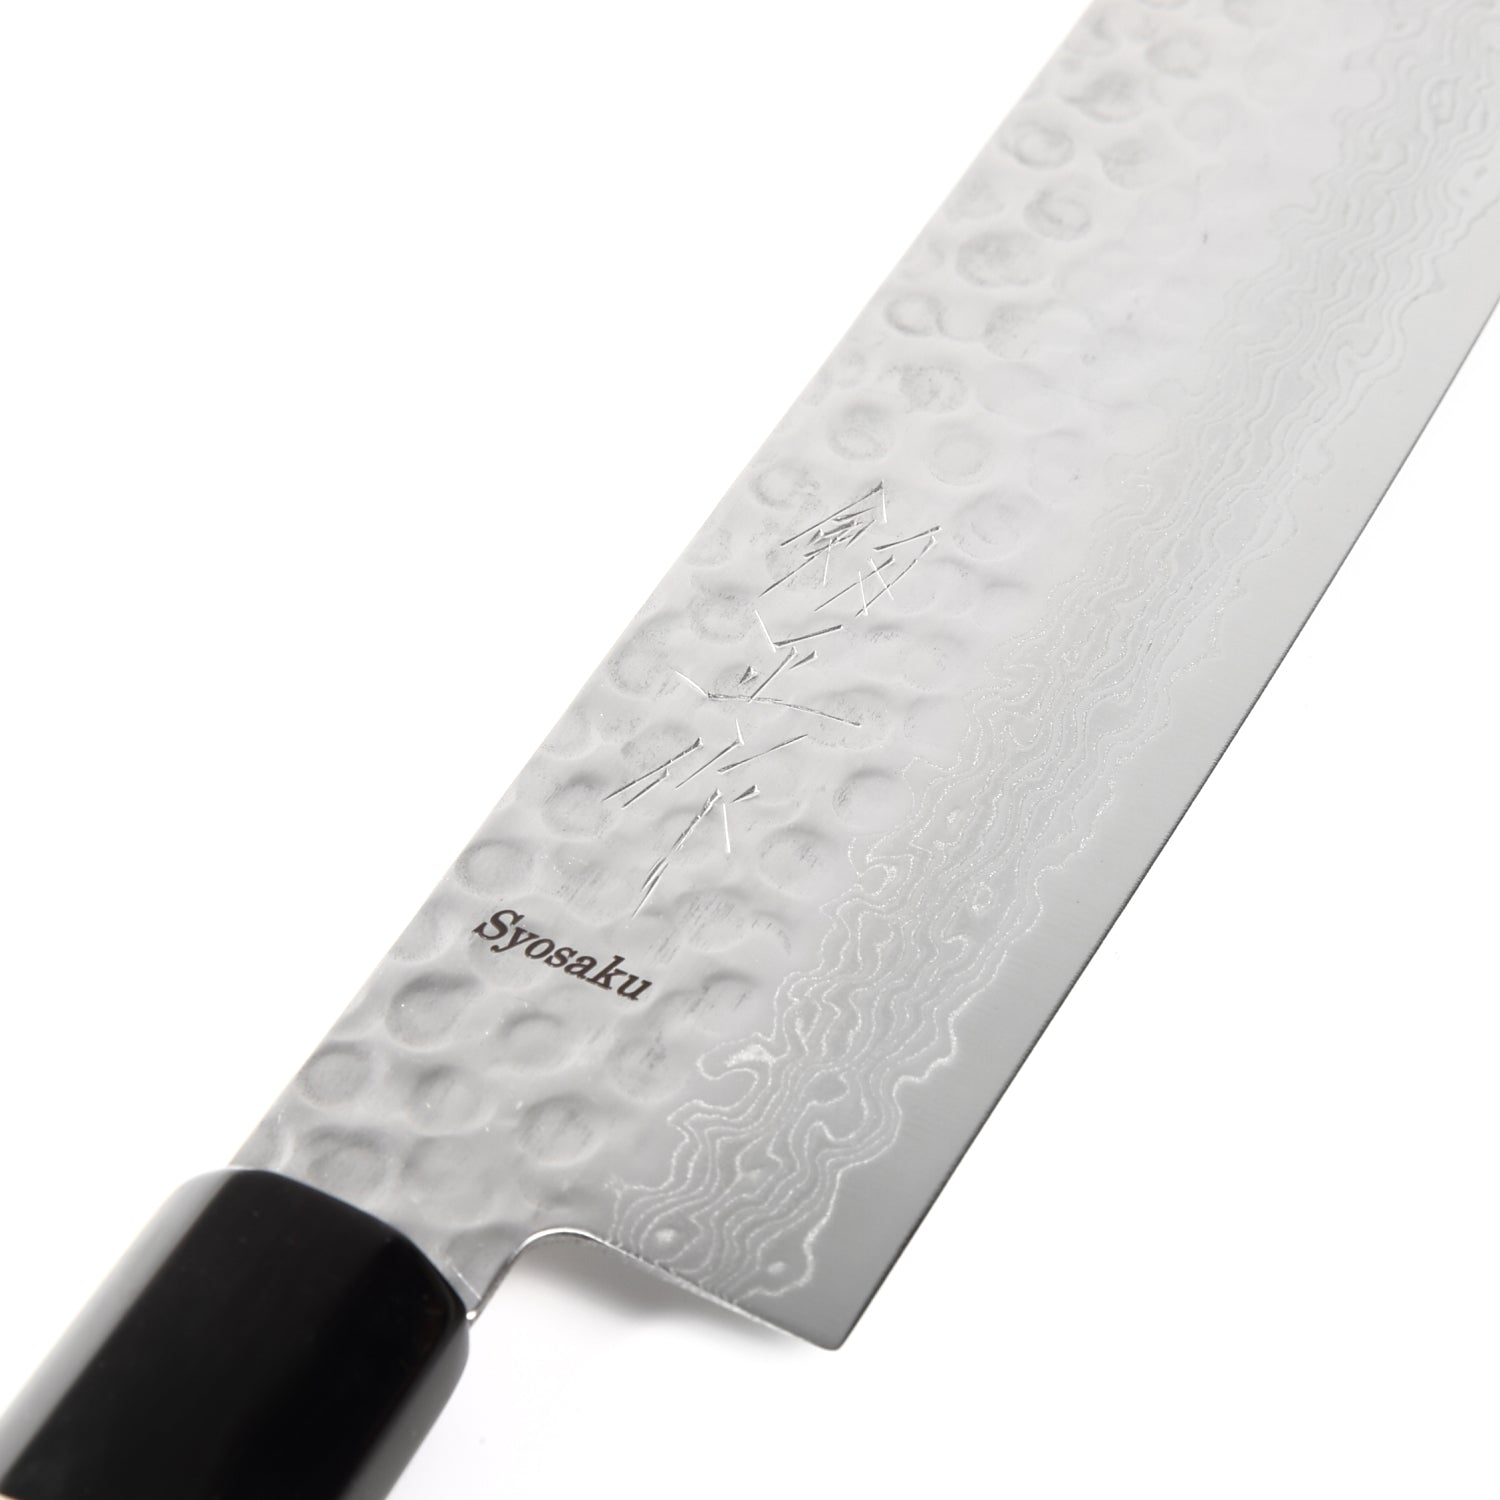 Syosaku Japanese Vegetable Knife Hammered Damascus VG-10 46 Layer Octagonal Magnolia Wood Handle, Nakiri 6.3-inch (160mm) - Syosaku-Japan